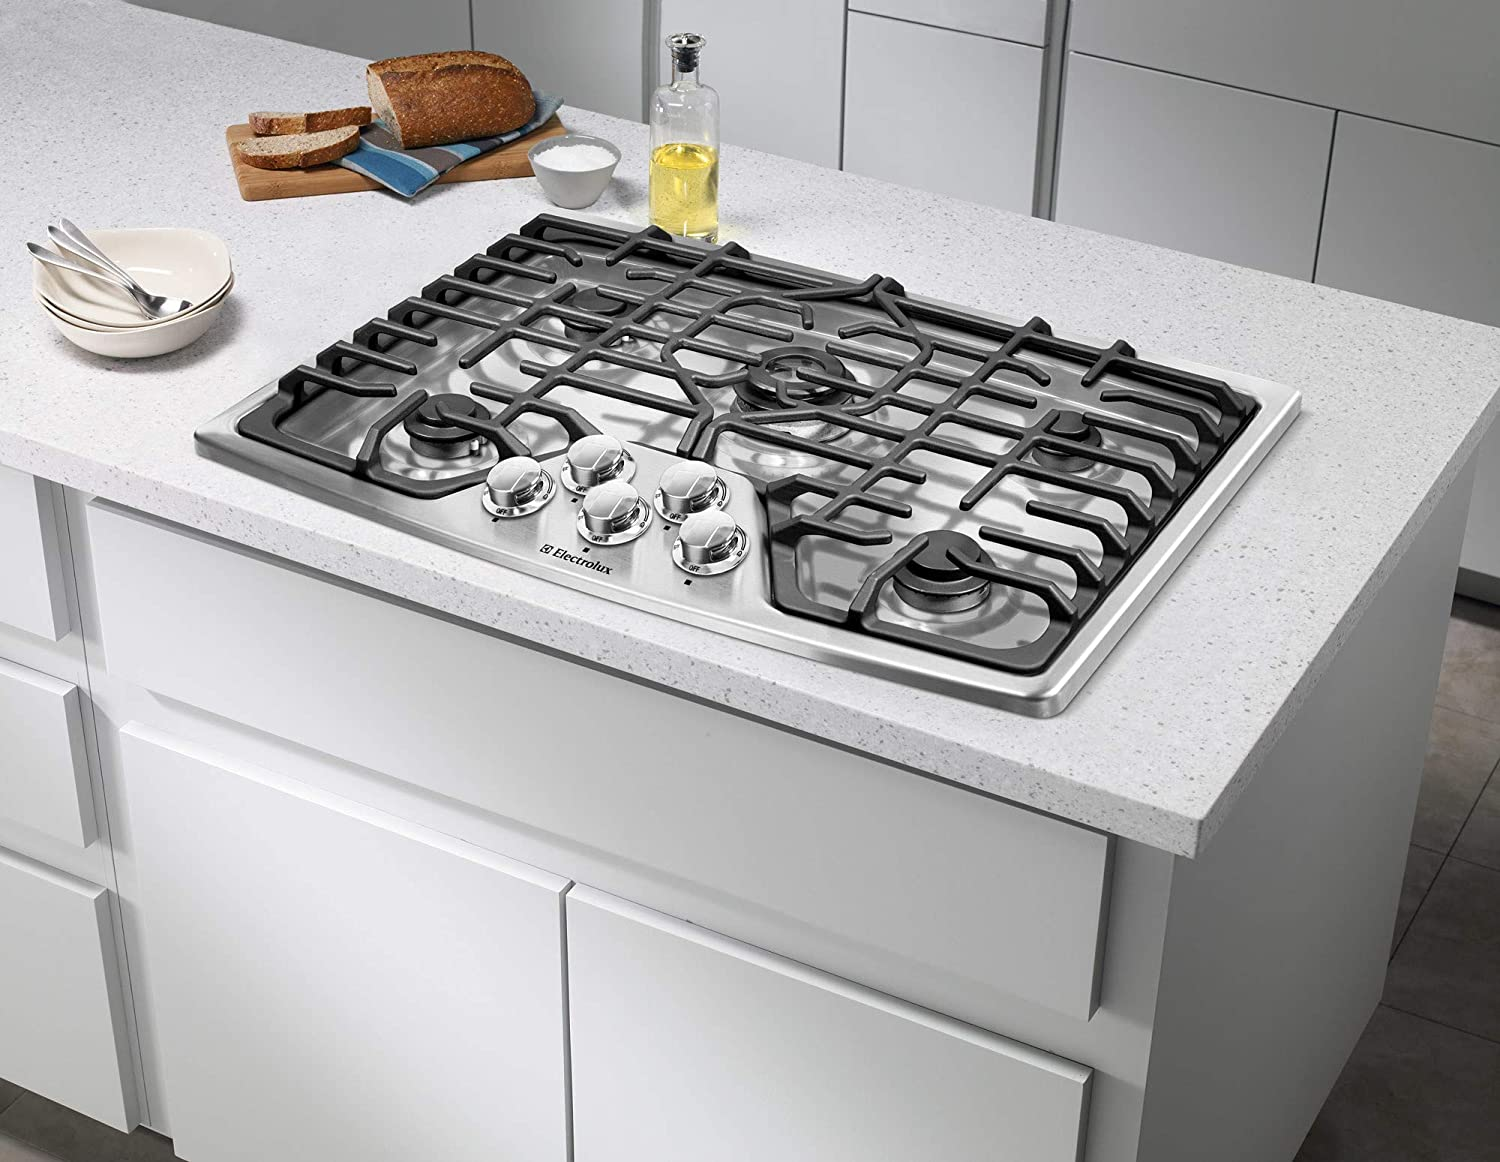 Amazon.com: Electrolux ew30gc60ps Built-in Gas ...